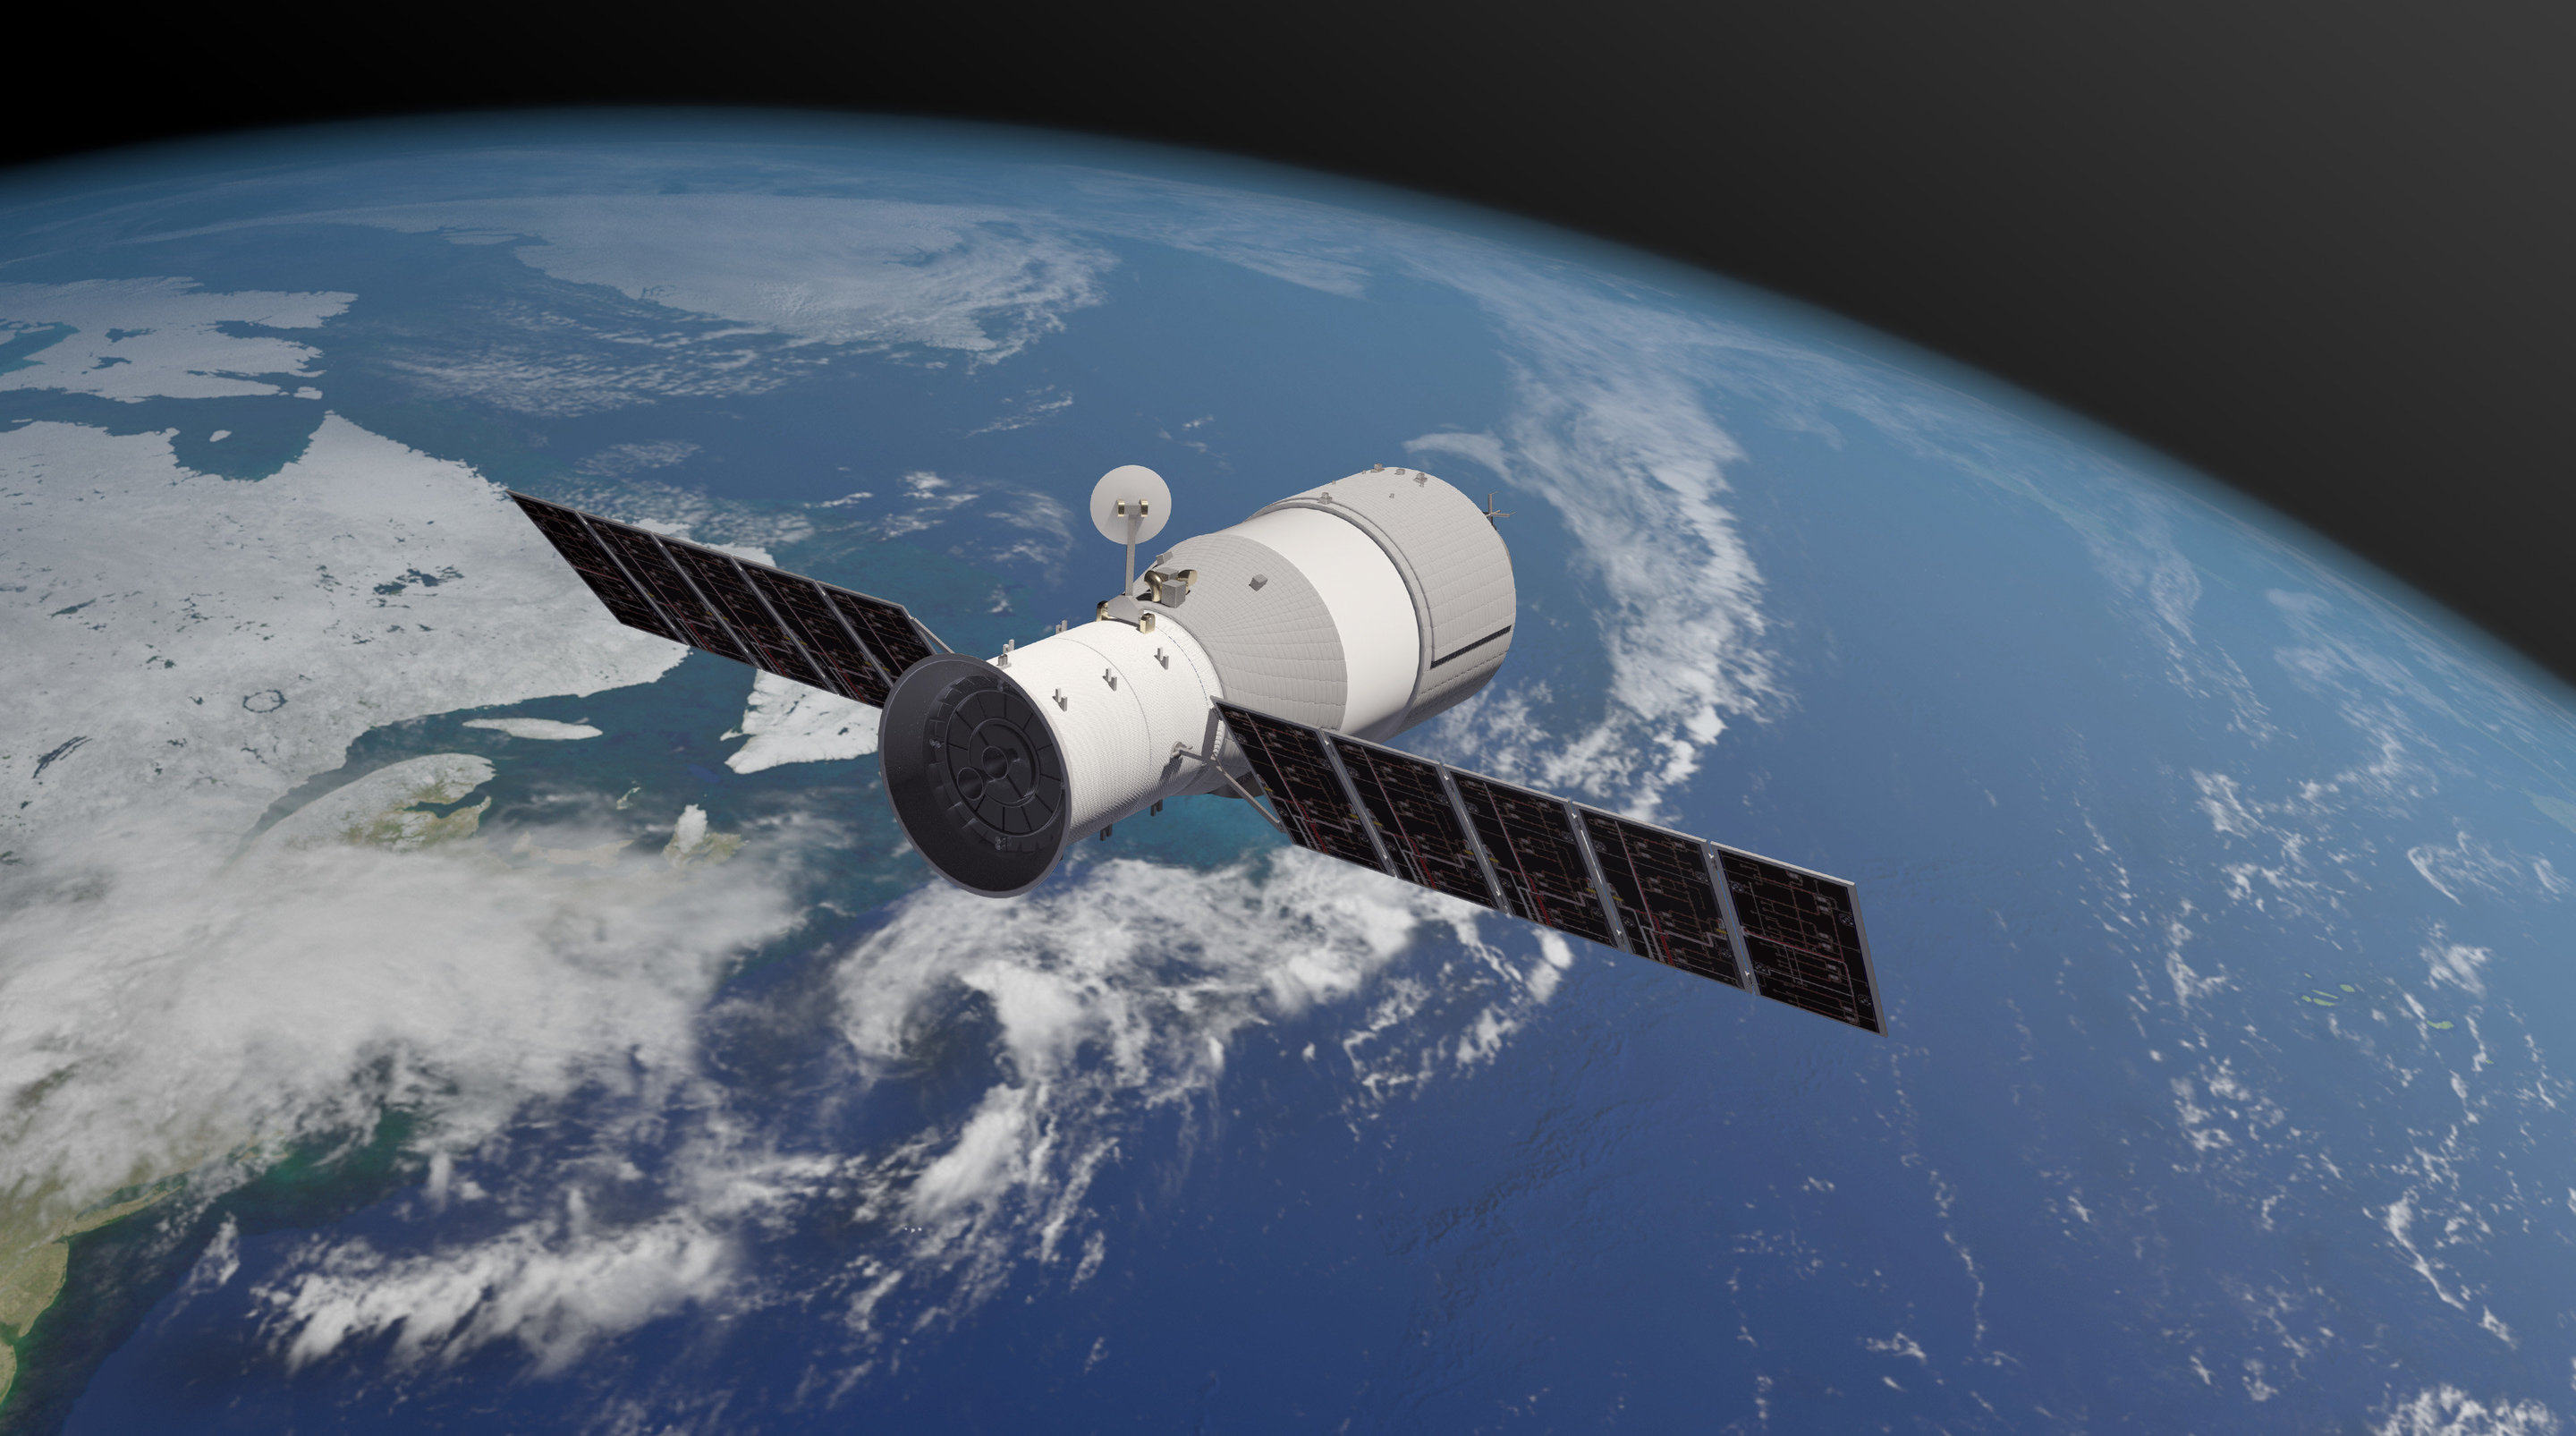 With China's space station about to crash land, who's responsible if ...